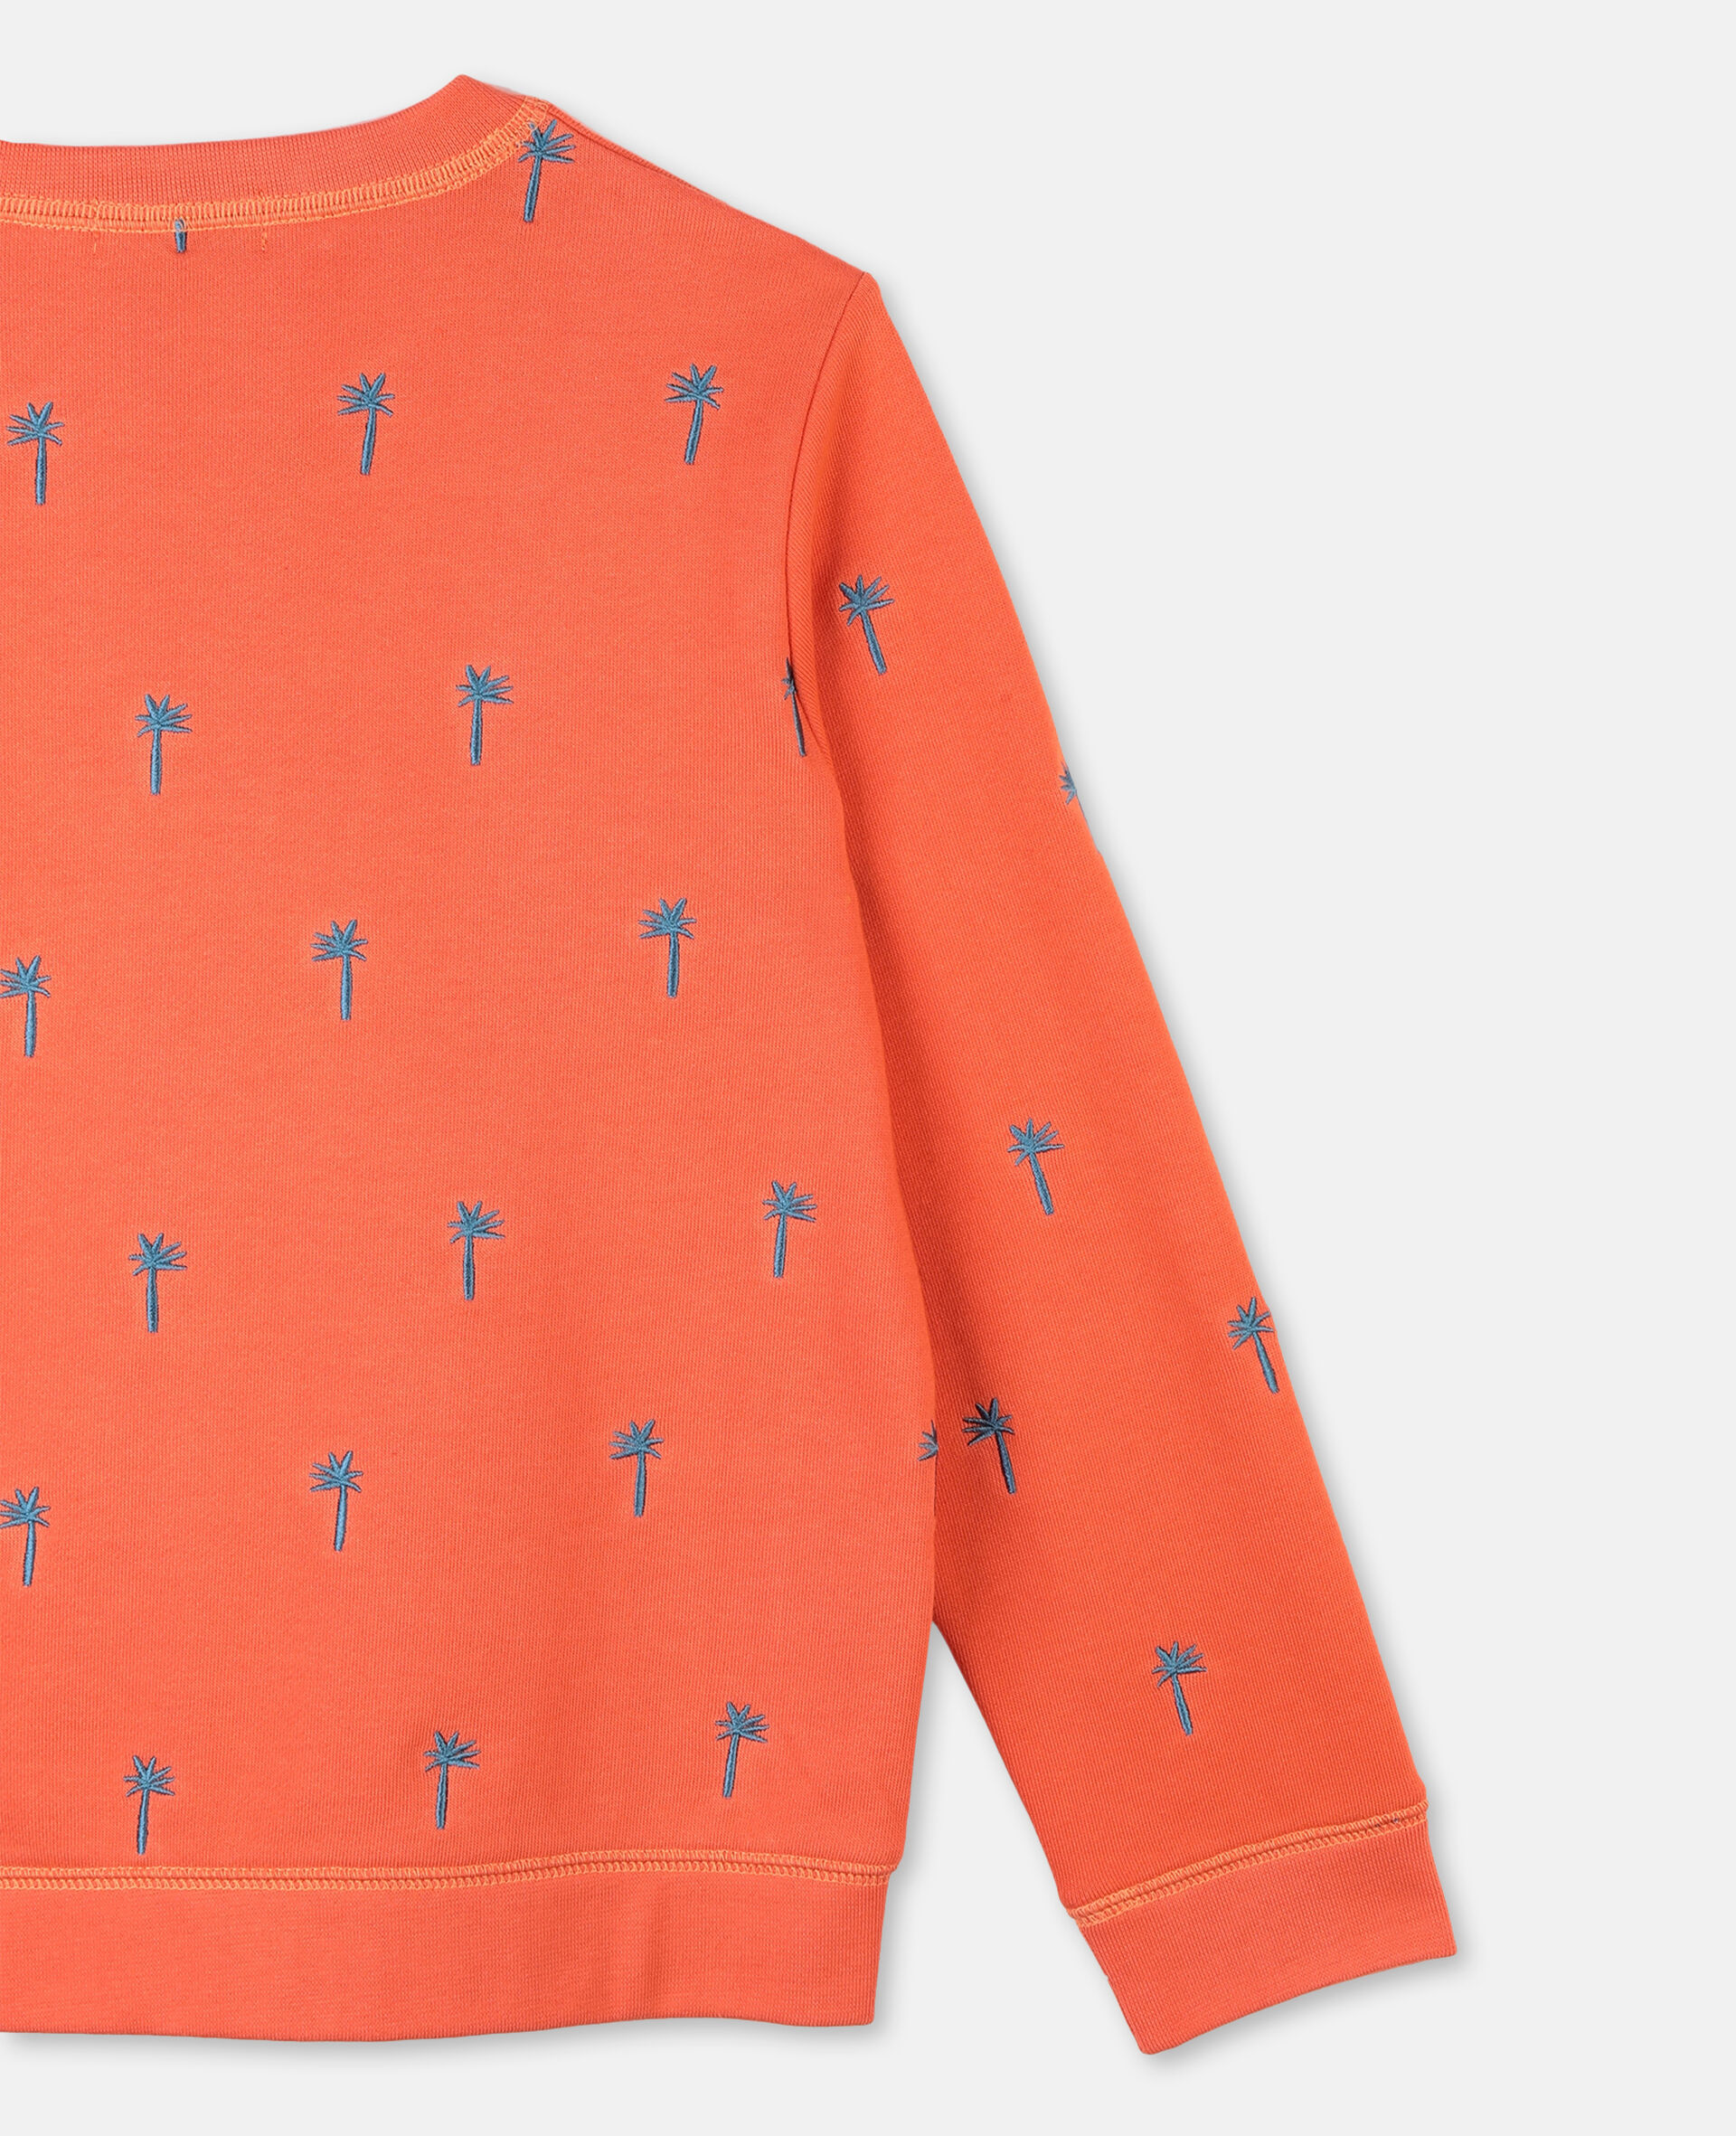 Embroidered Palm Cotton Sweatshirt -Red-large image number 1